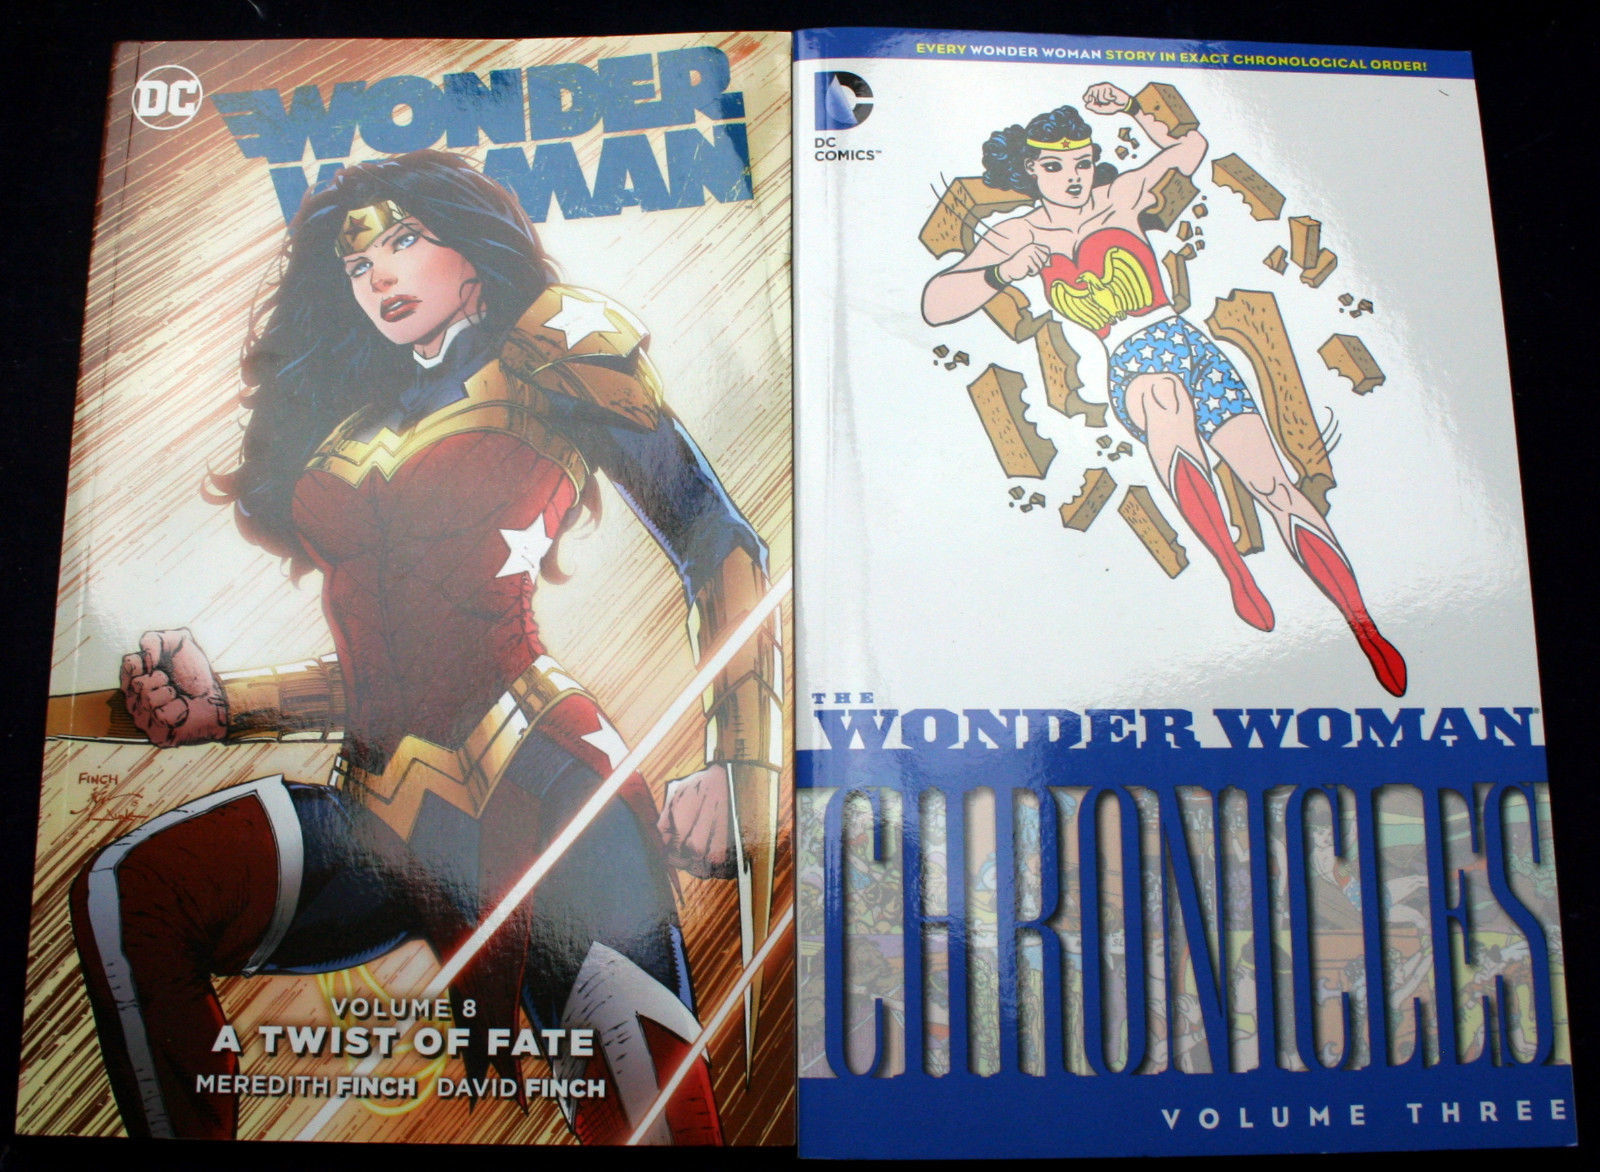 Lot 2 Wonder Woman CHRONICLES Vol. 3 1943 archives A TWIST OF FATE Finch Bros TP